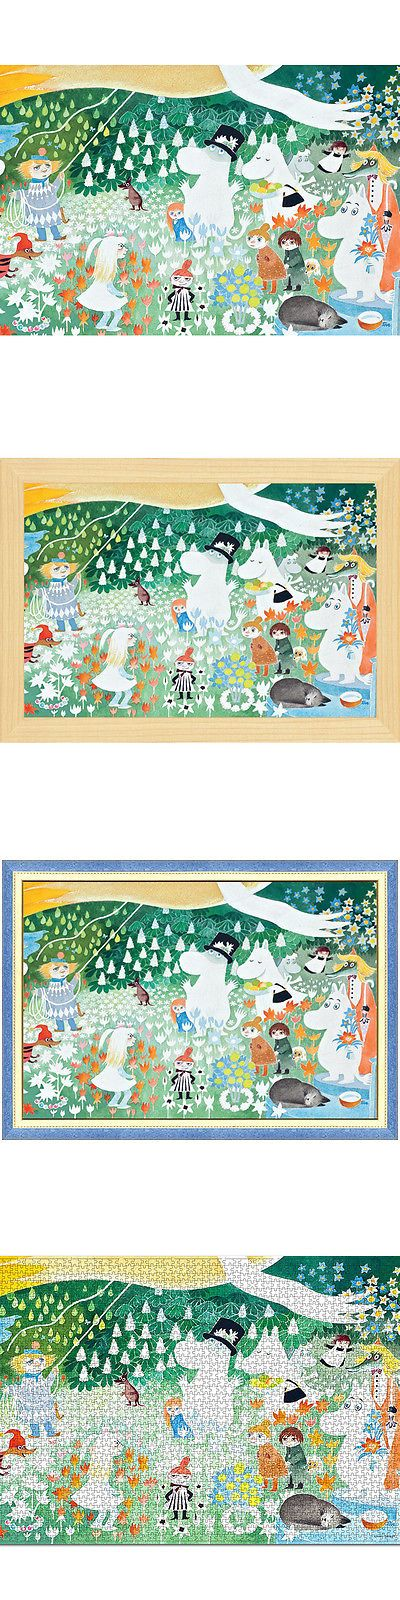 Jigsaw 19183: Tove Jansson Moomin Party In The Moomin Valley 2000 Piece Mini Jigsaw Puzzle -> BUY IT NOW ONLY: $32.99 on eBay!